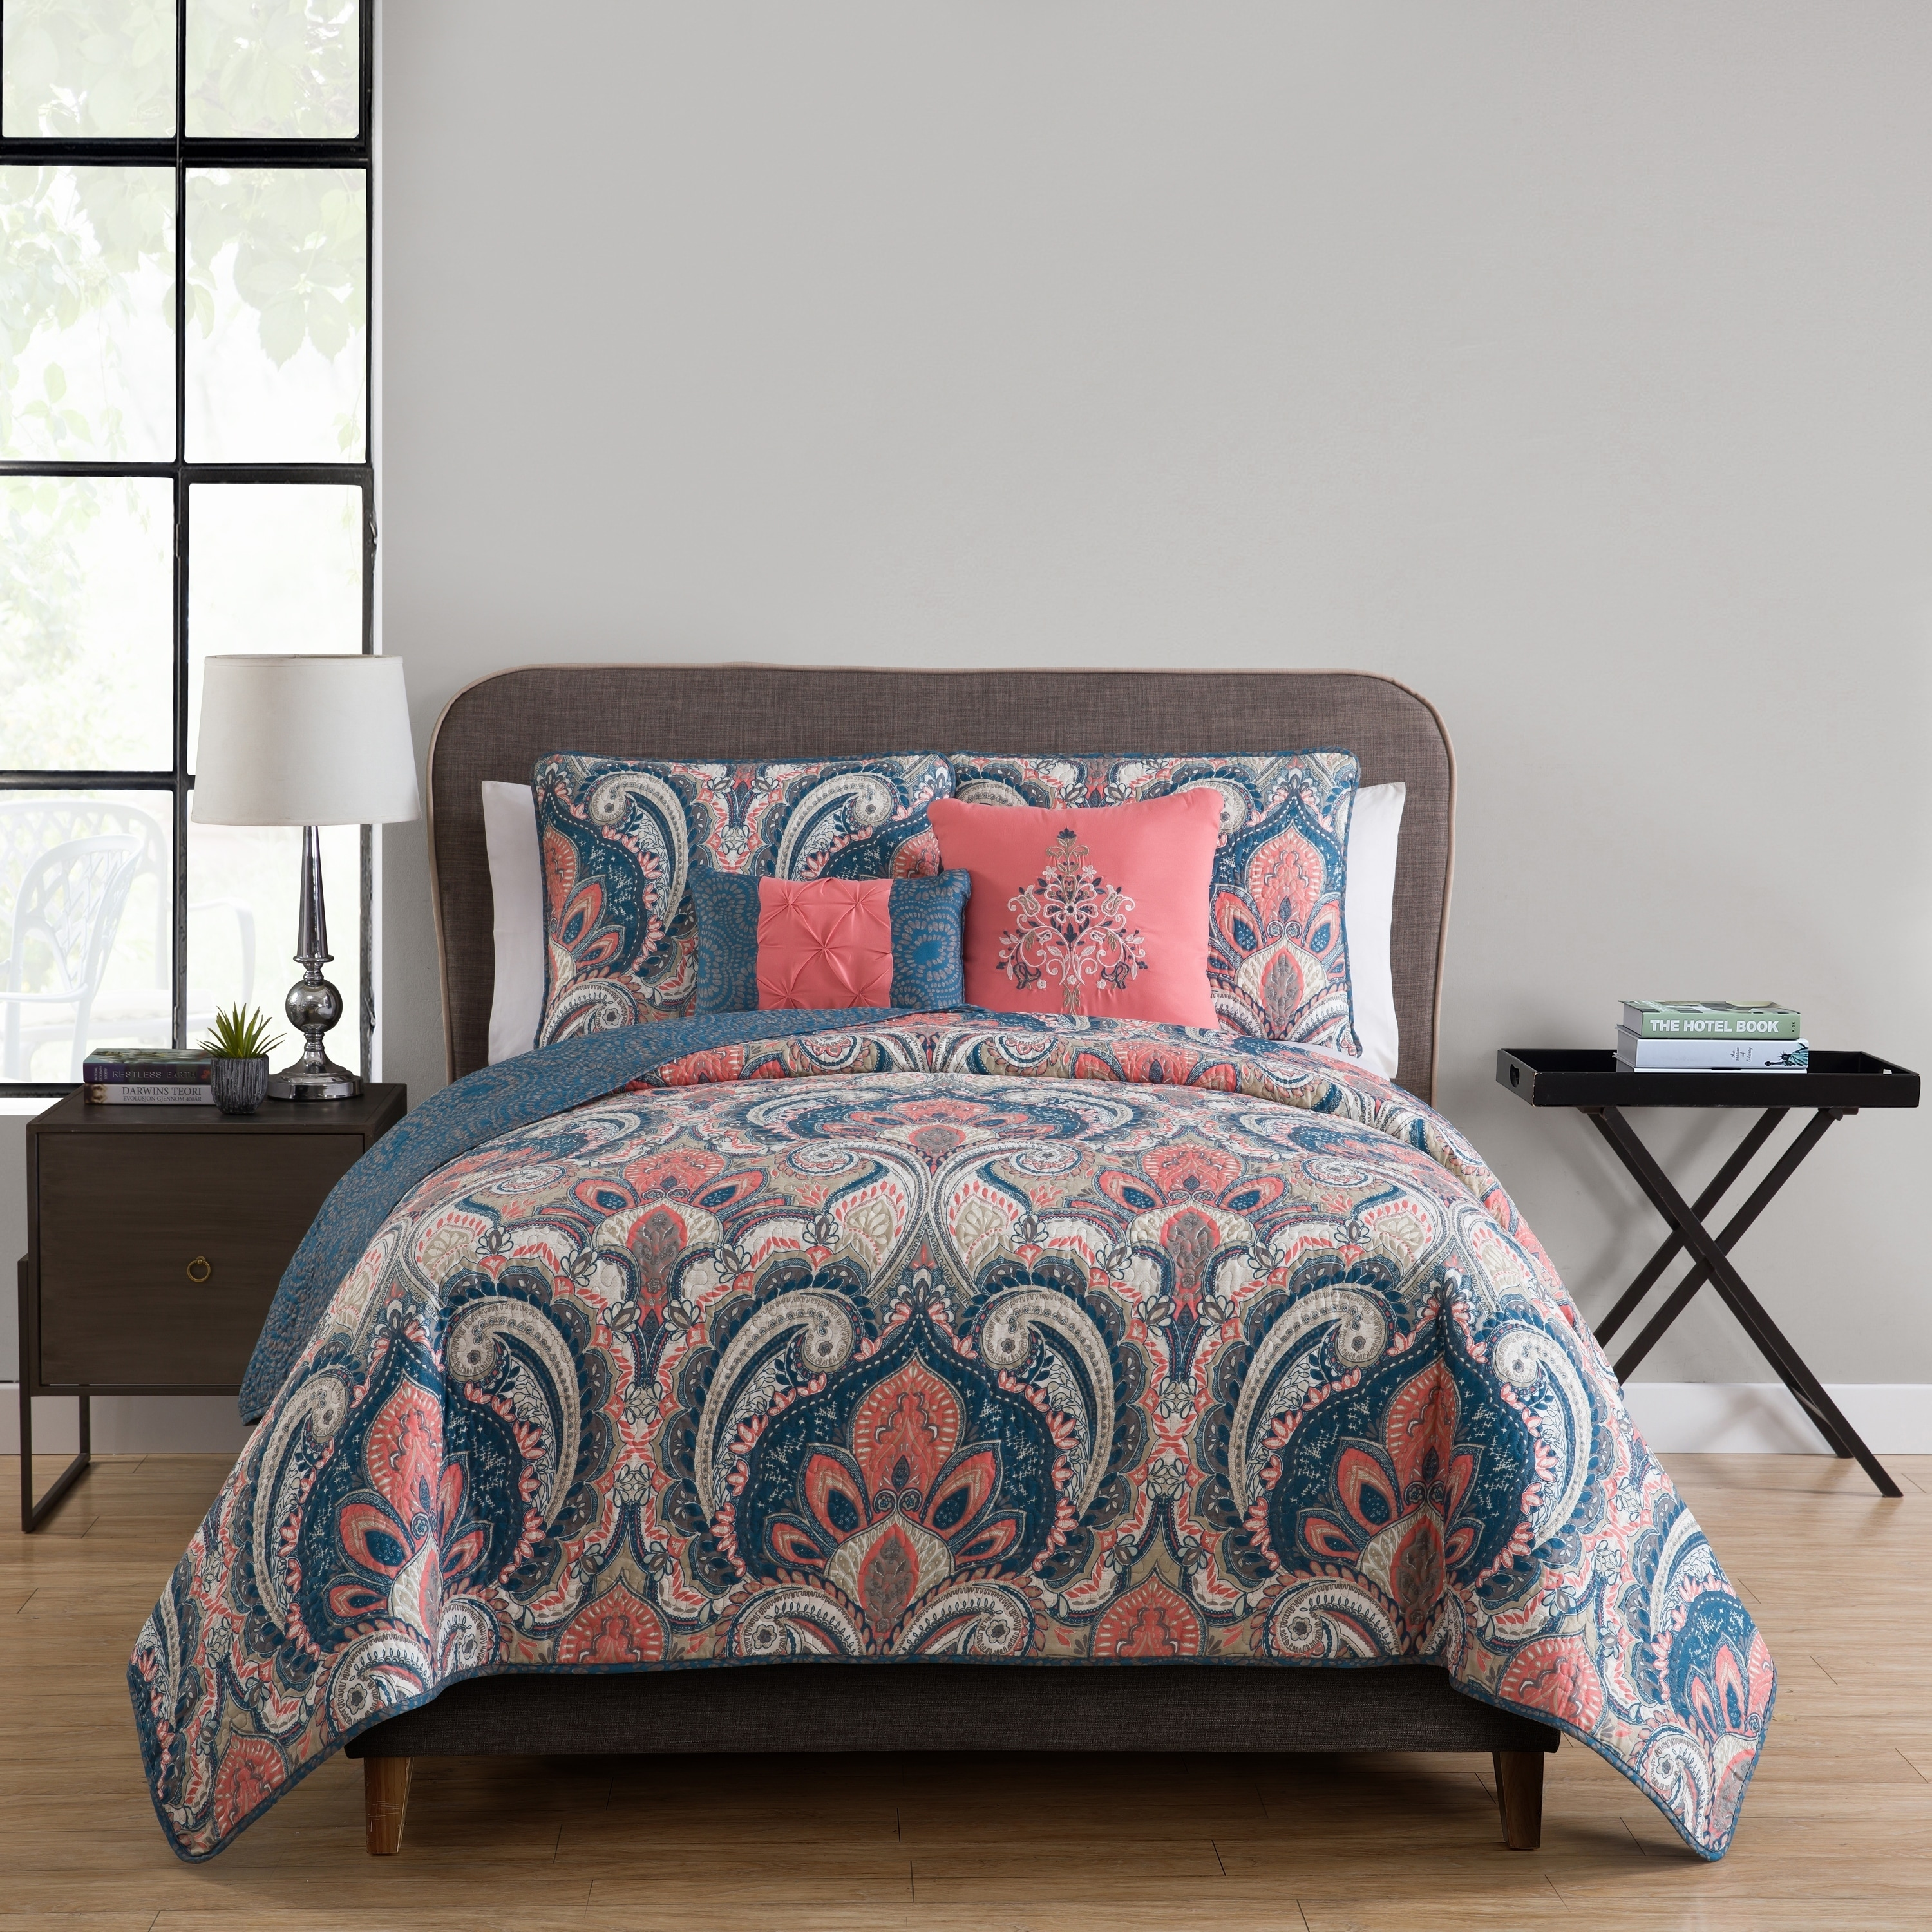 VCNY Home Casa Re`al 4/5 Piece Quilt Bedding Set, Sham(s), 2 Decorative pillows